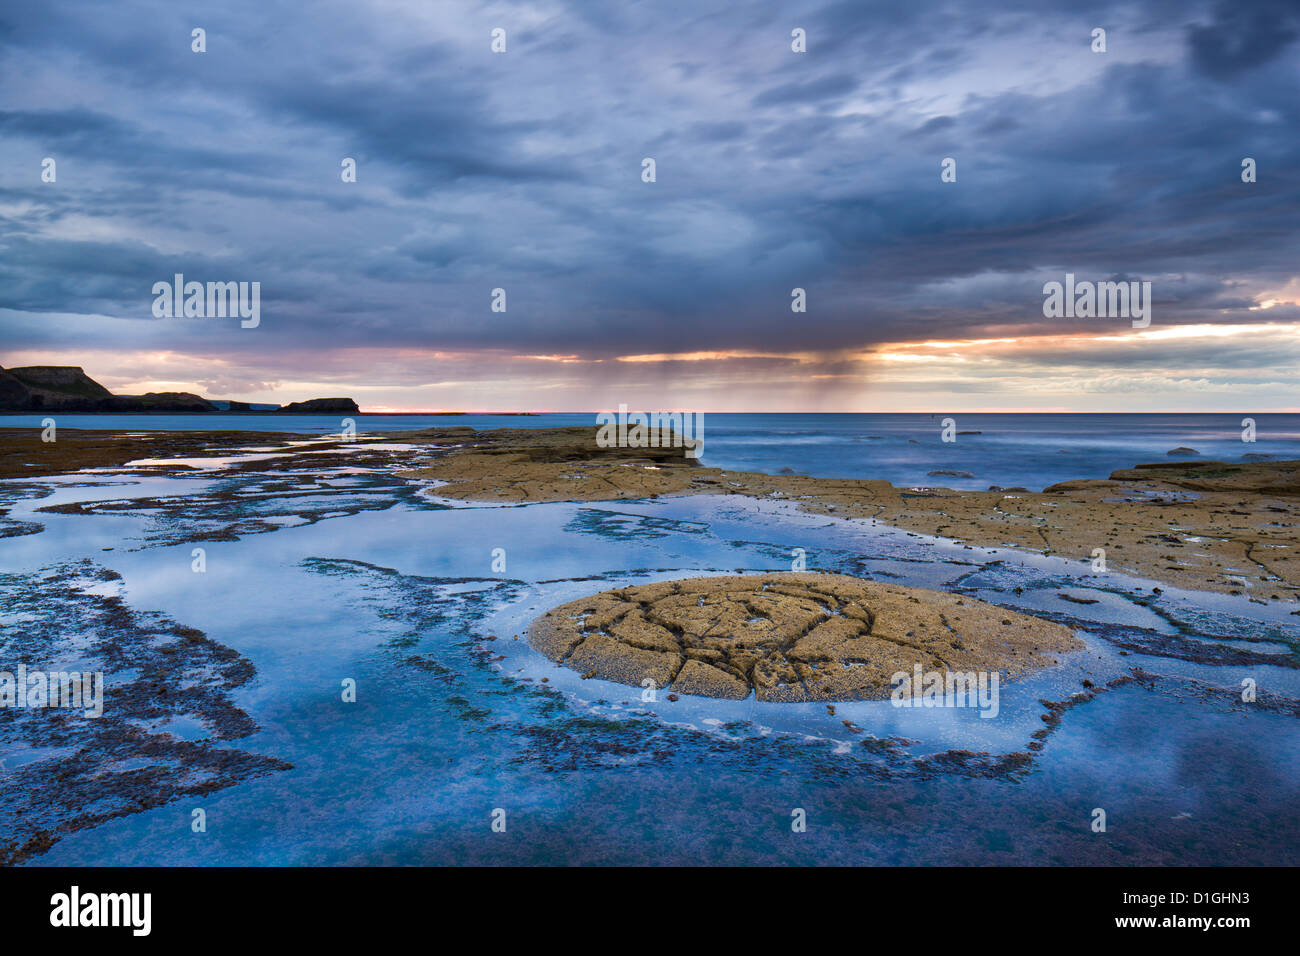 Ancient rock formations on the shale sea bed at Saltwick Bay, North Yorkshire, Yorkshire, England, United Kingdom, - Stock Image